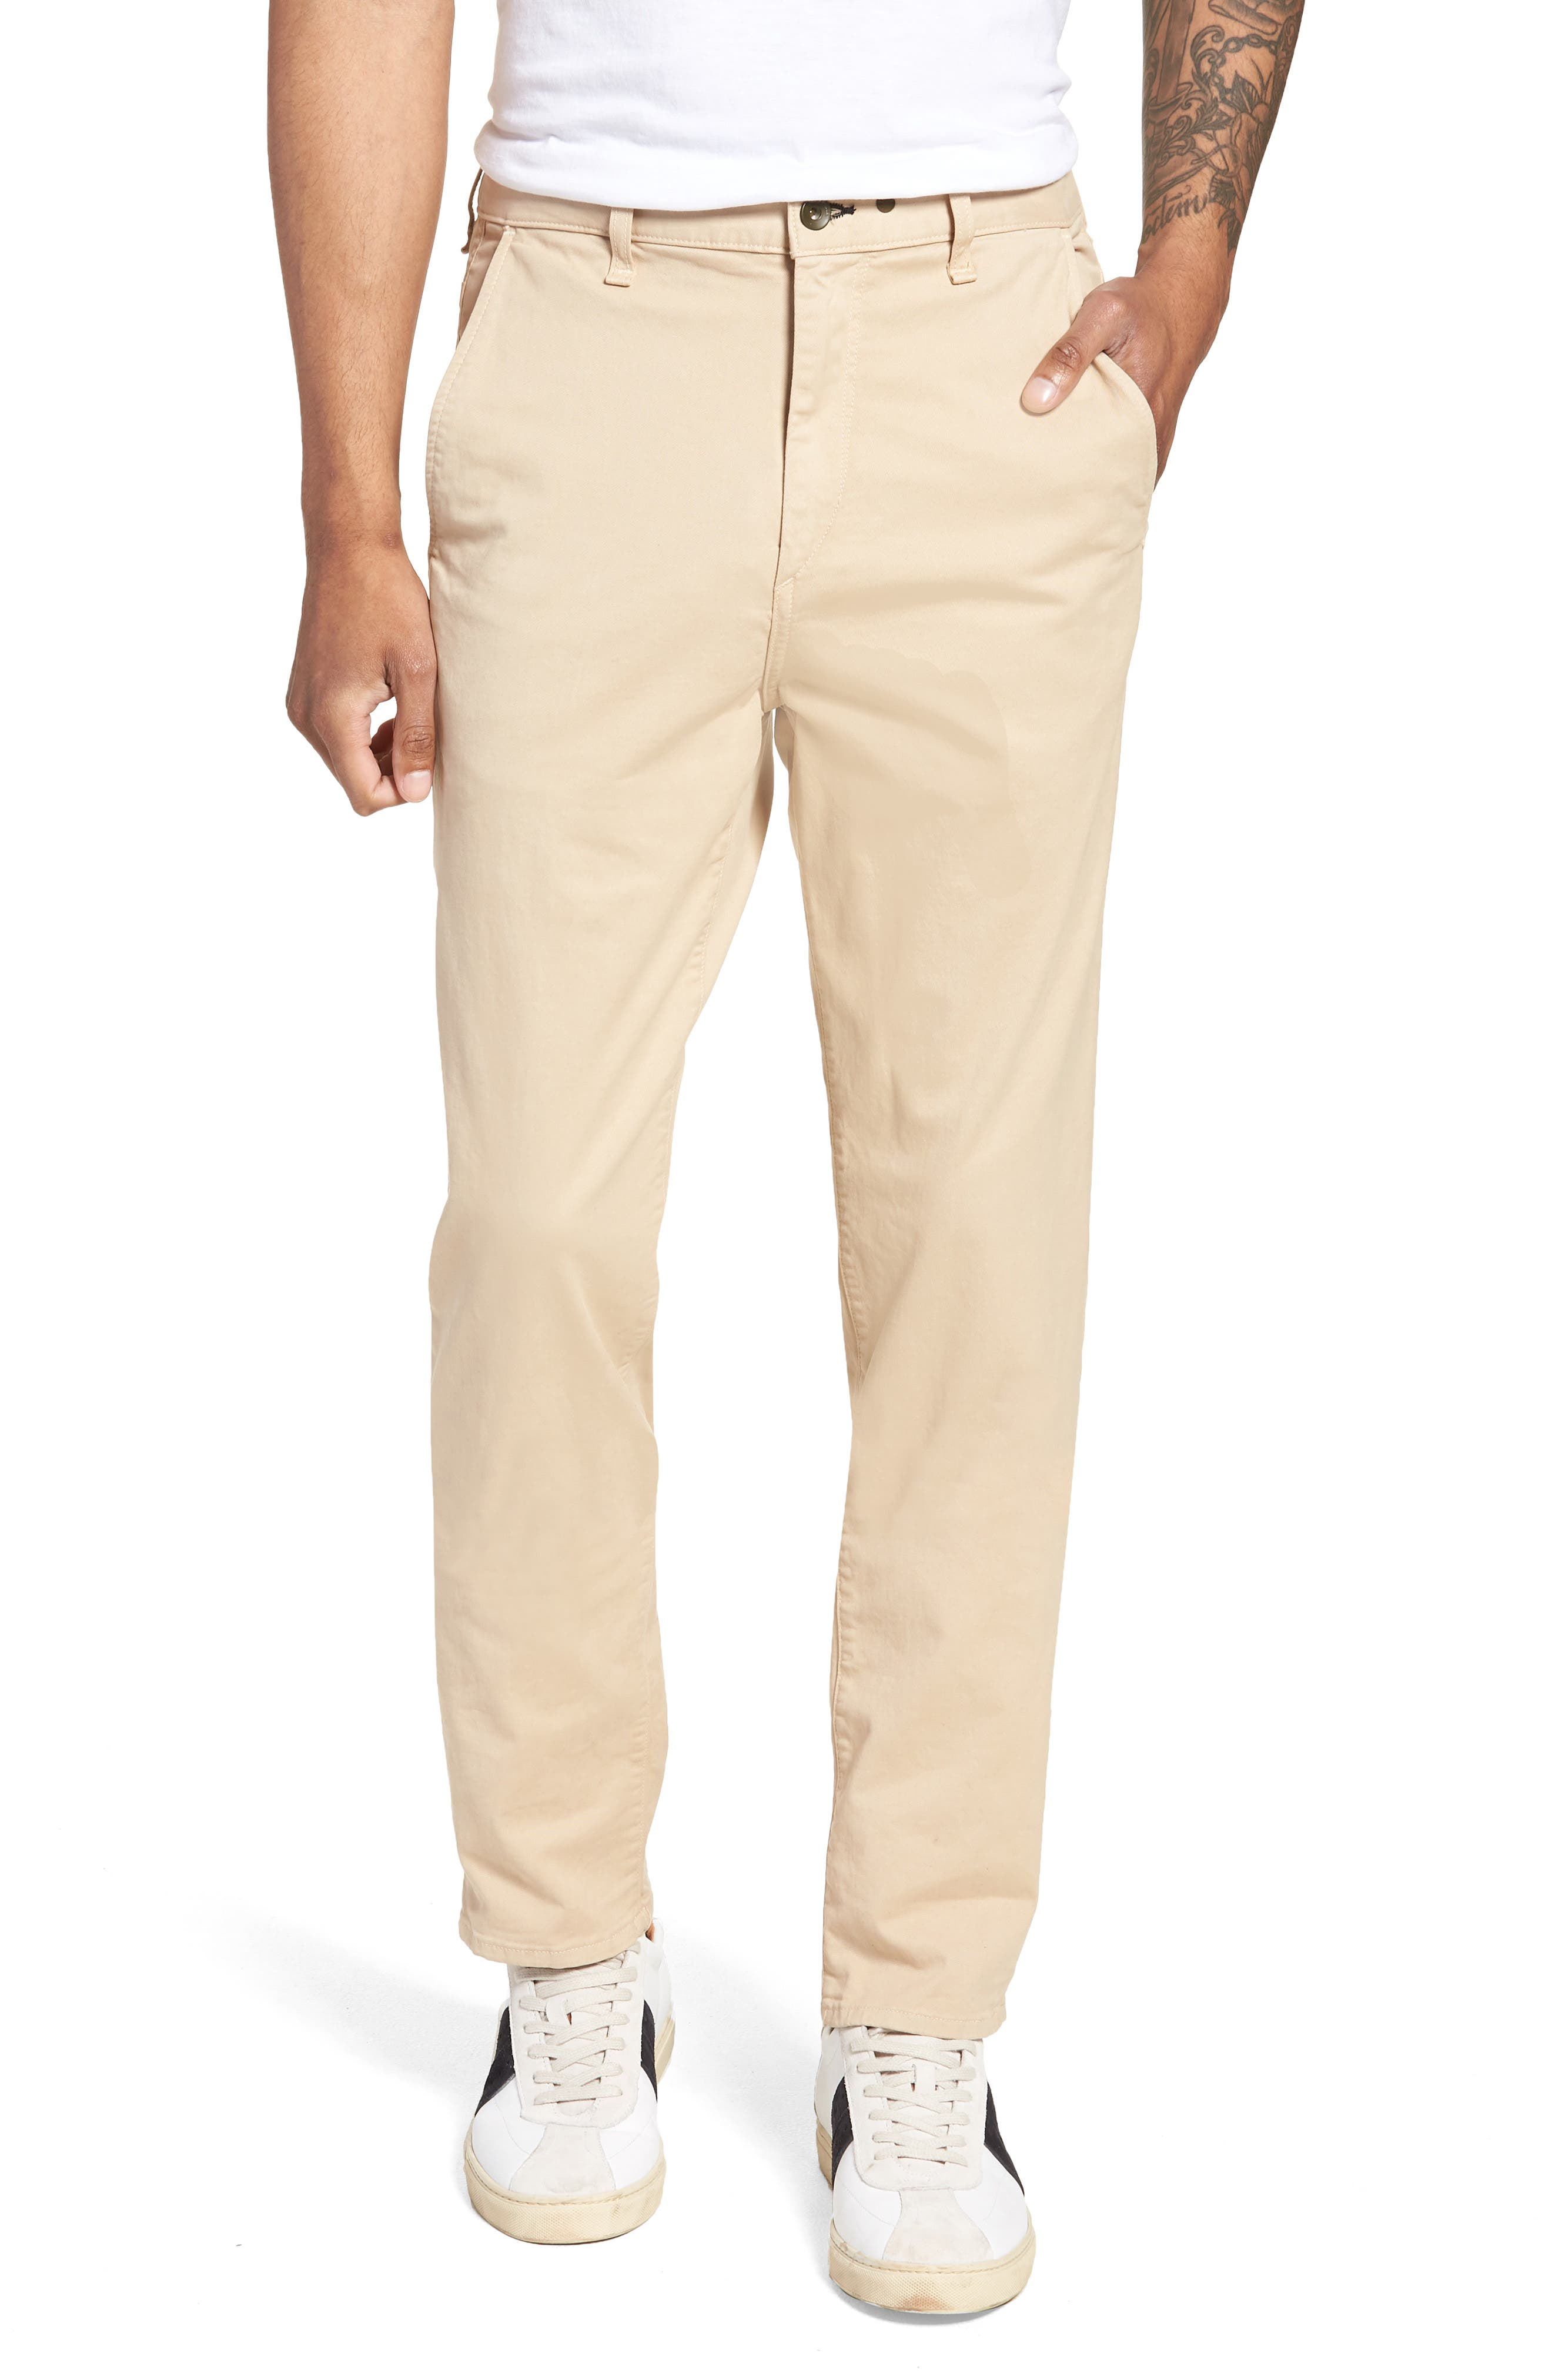 Fit 3 Classic Chino,                             Main thumbnail 1, color,                             Beige